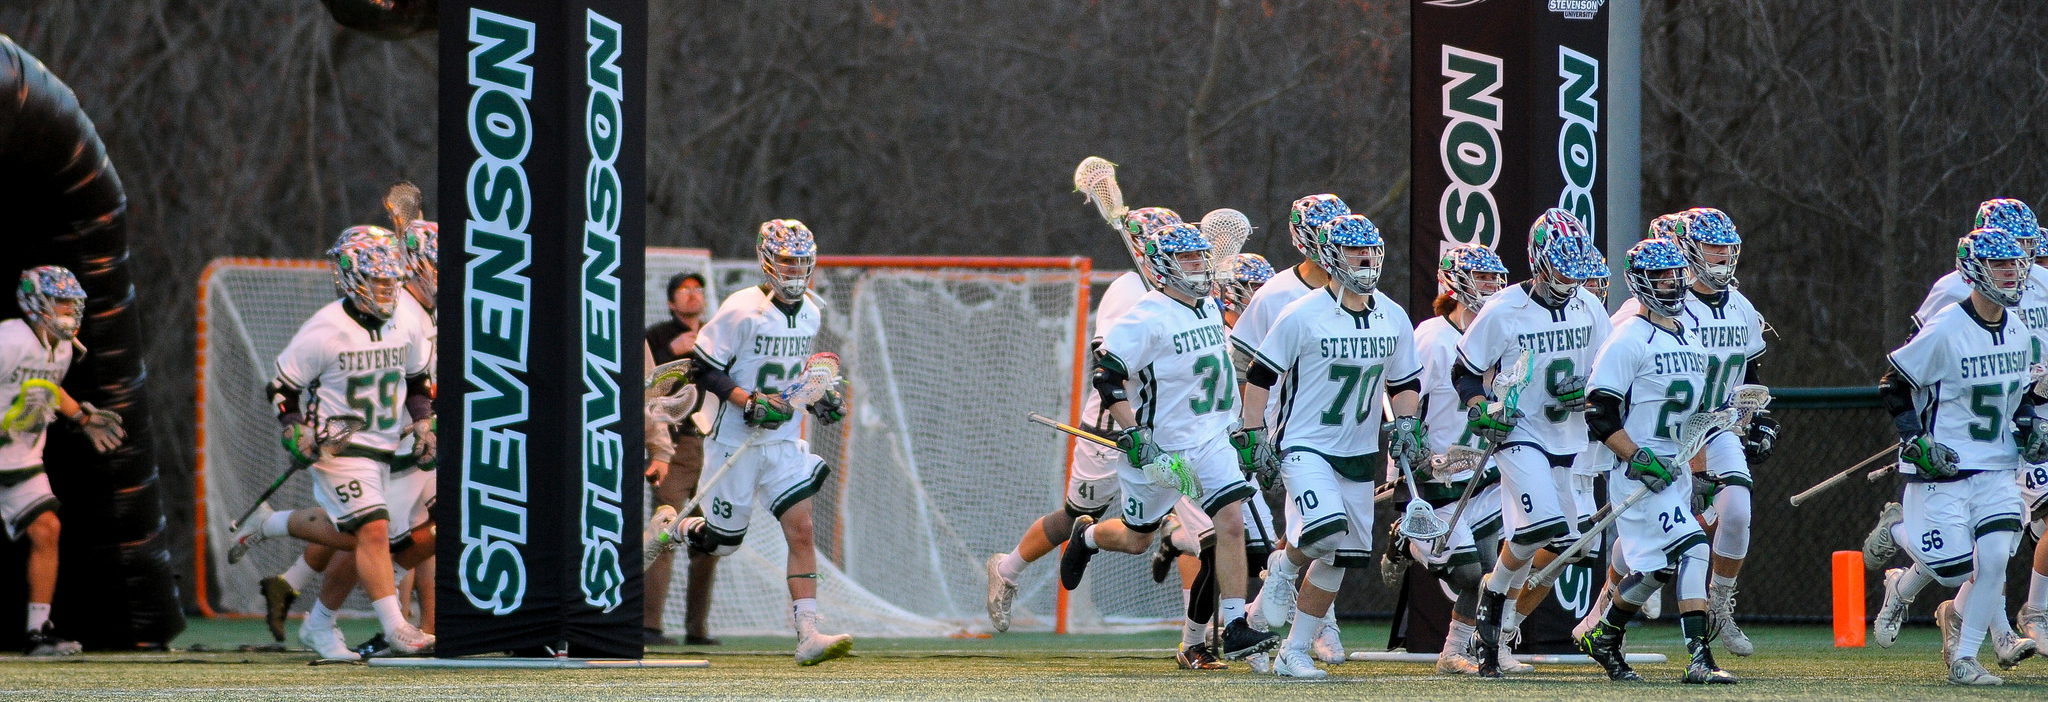 Men's Lacrosse to Hold Prospect Day on Sunday, August 12